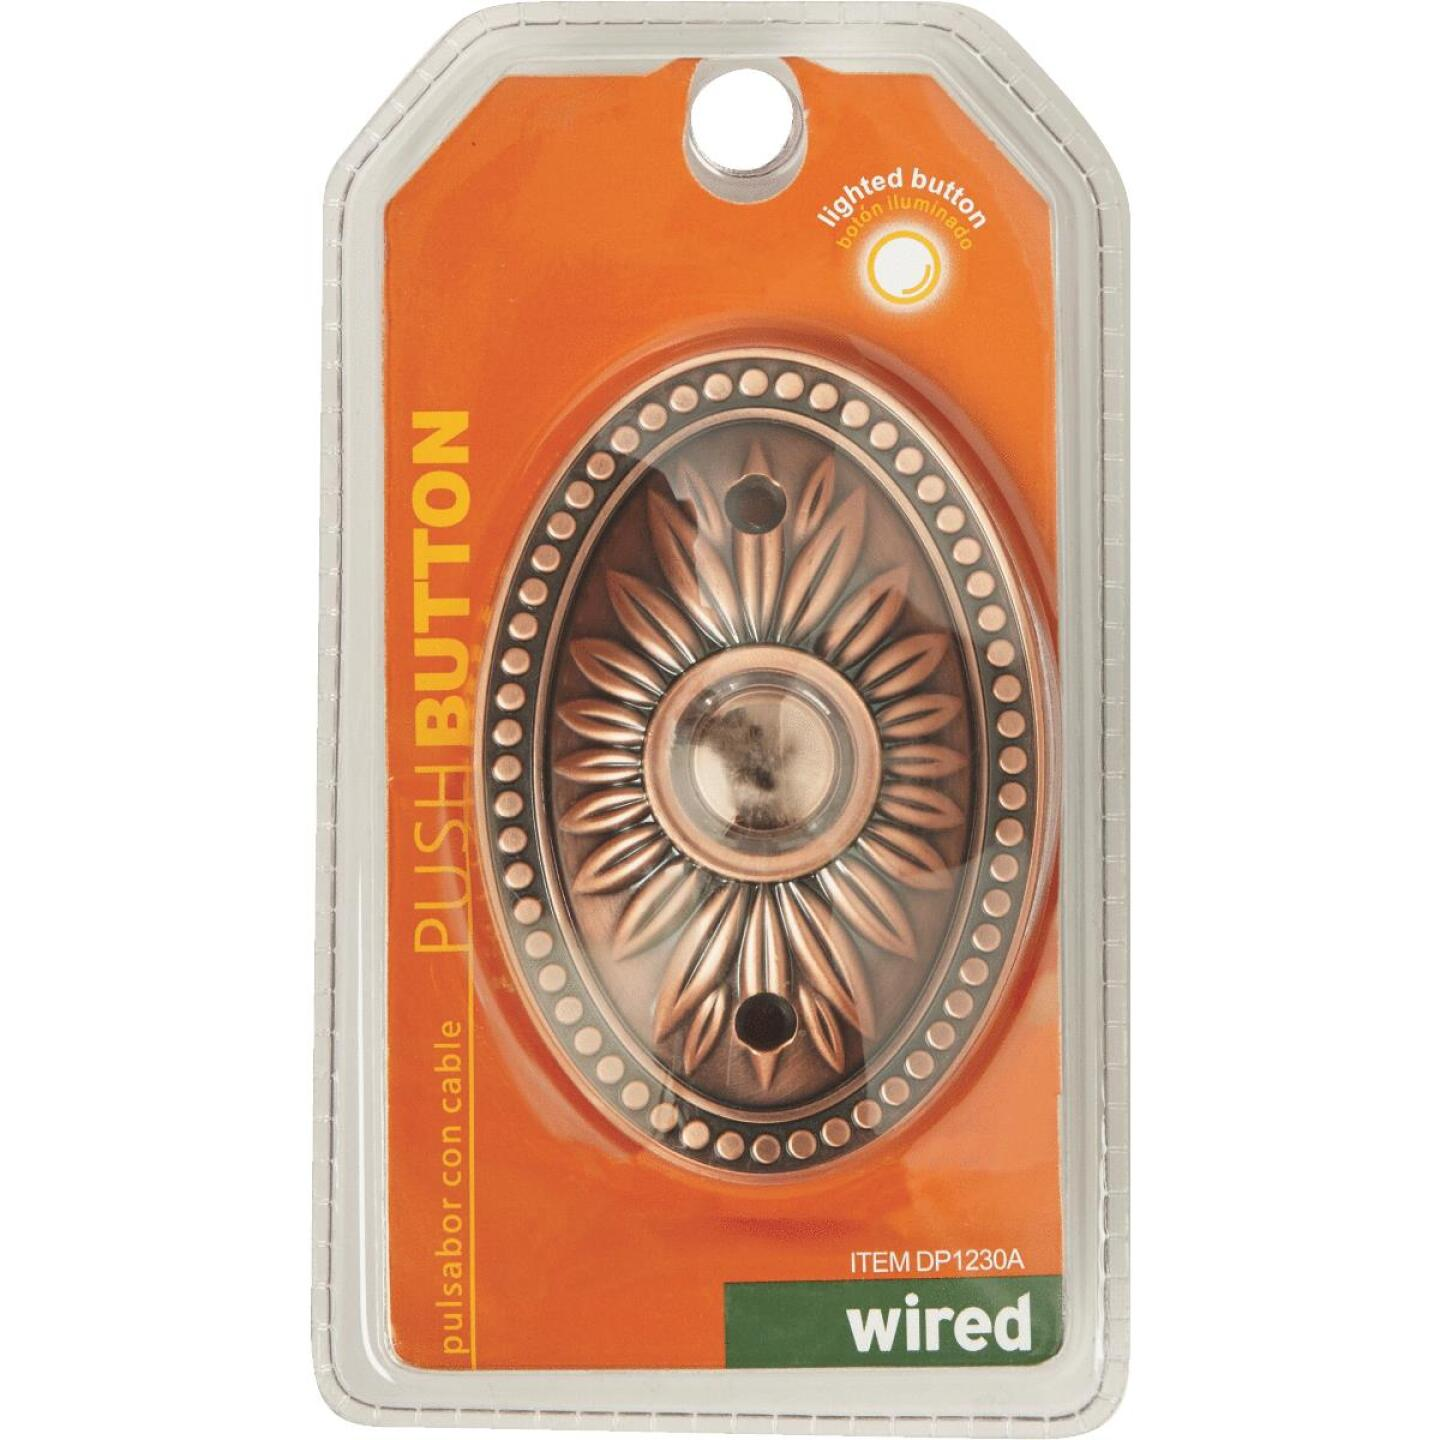 IQ America Wired Bronze Lighted Doorbell Button Image 2